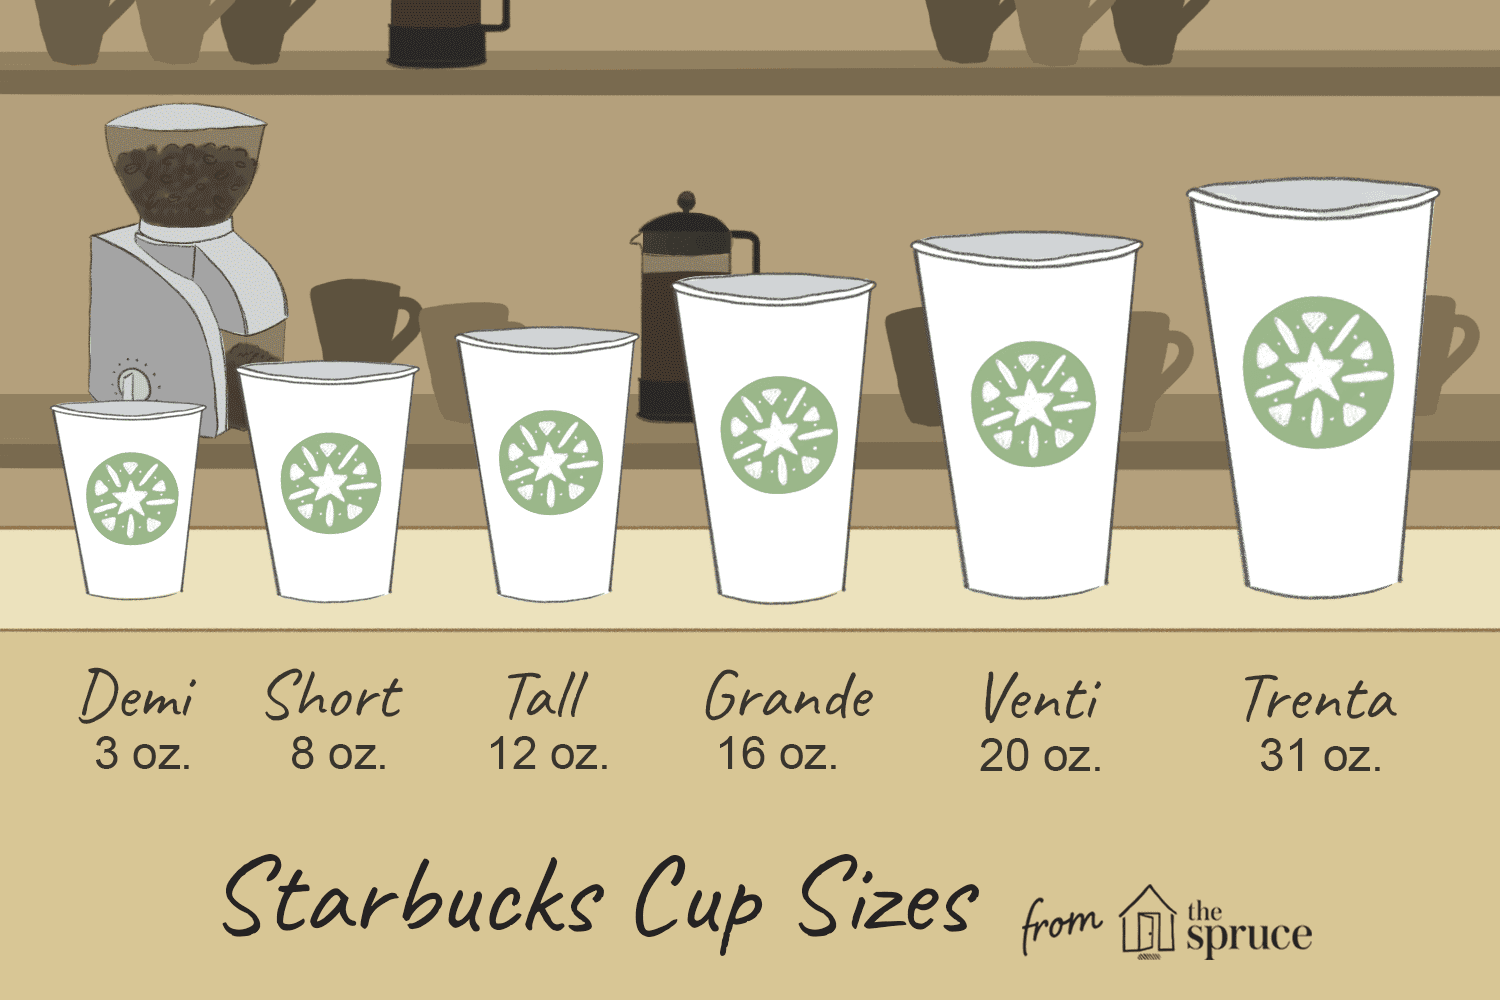 Starbucks Drink Sizes In Ounces